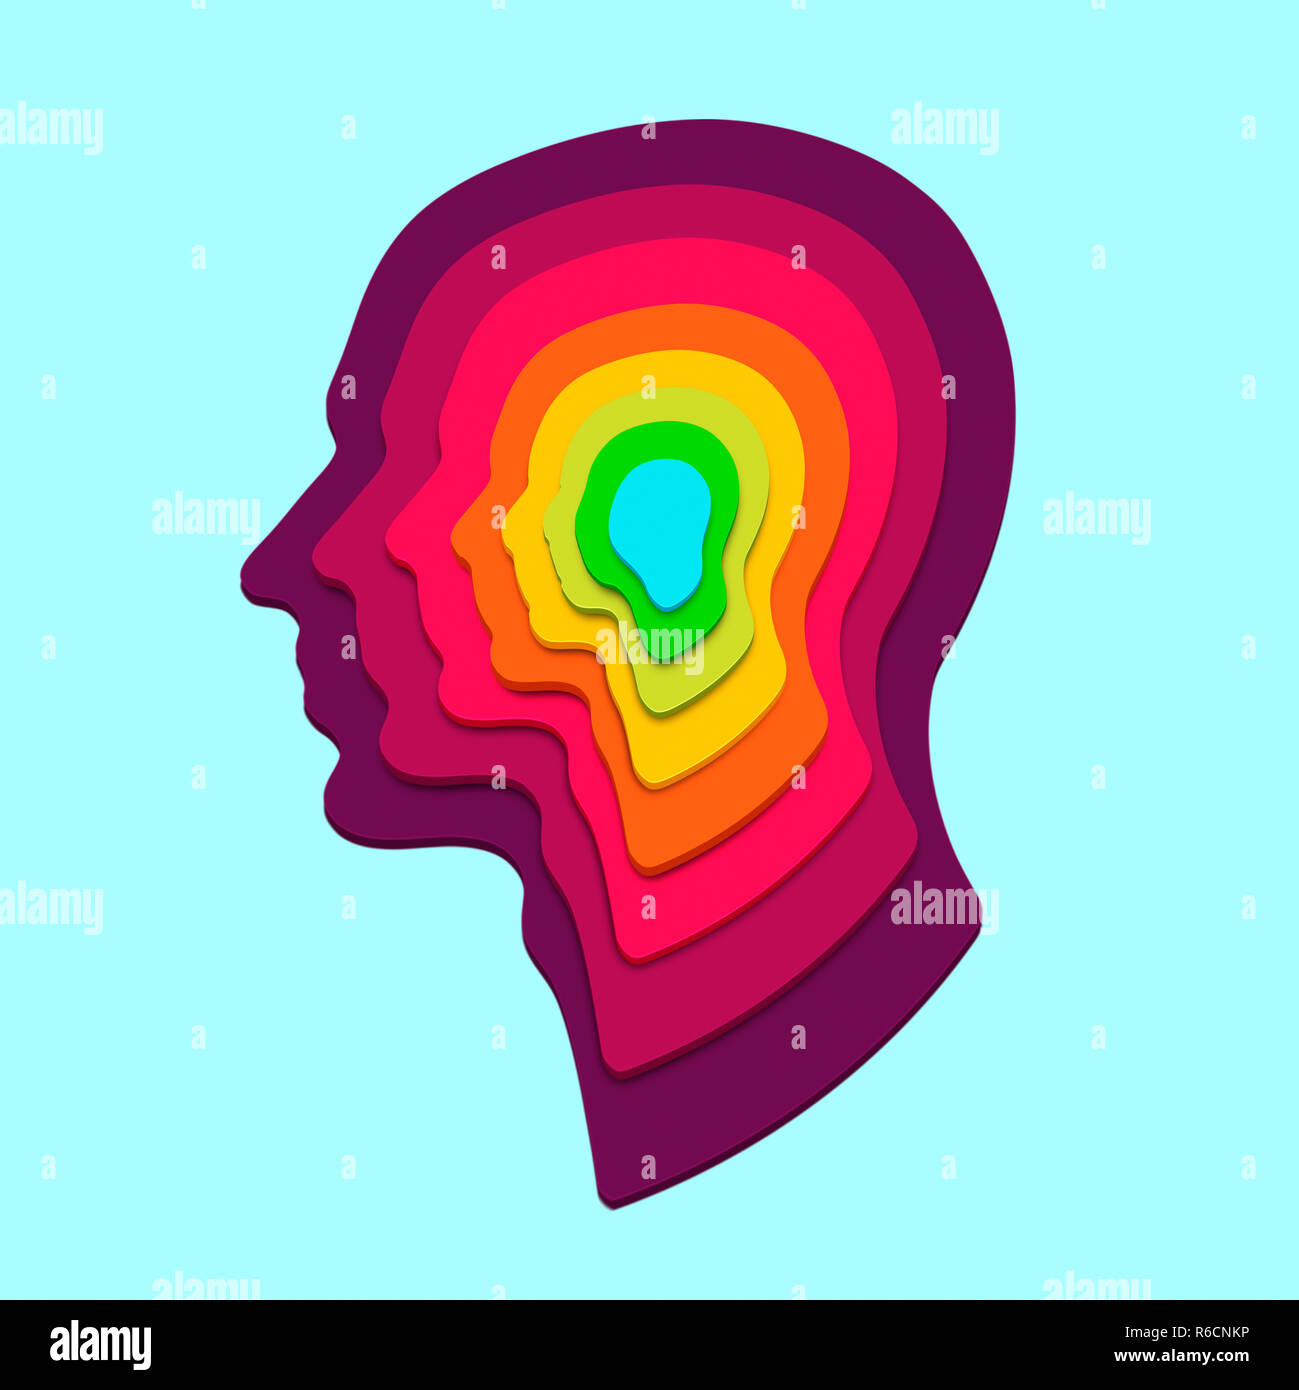 Concentric human profile shapes in rainbow colours on a pale blue background - Stock Image